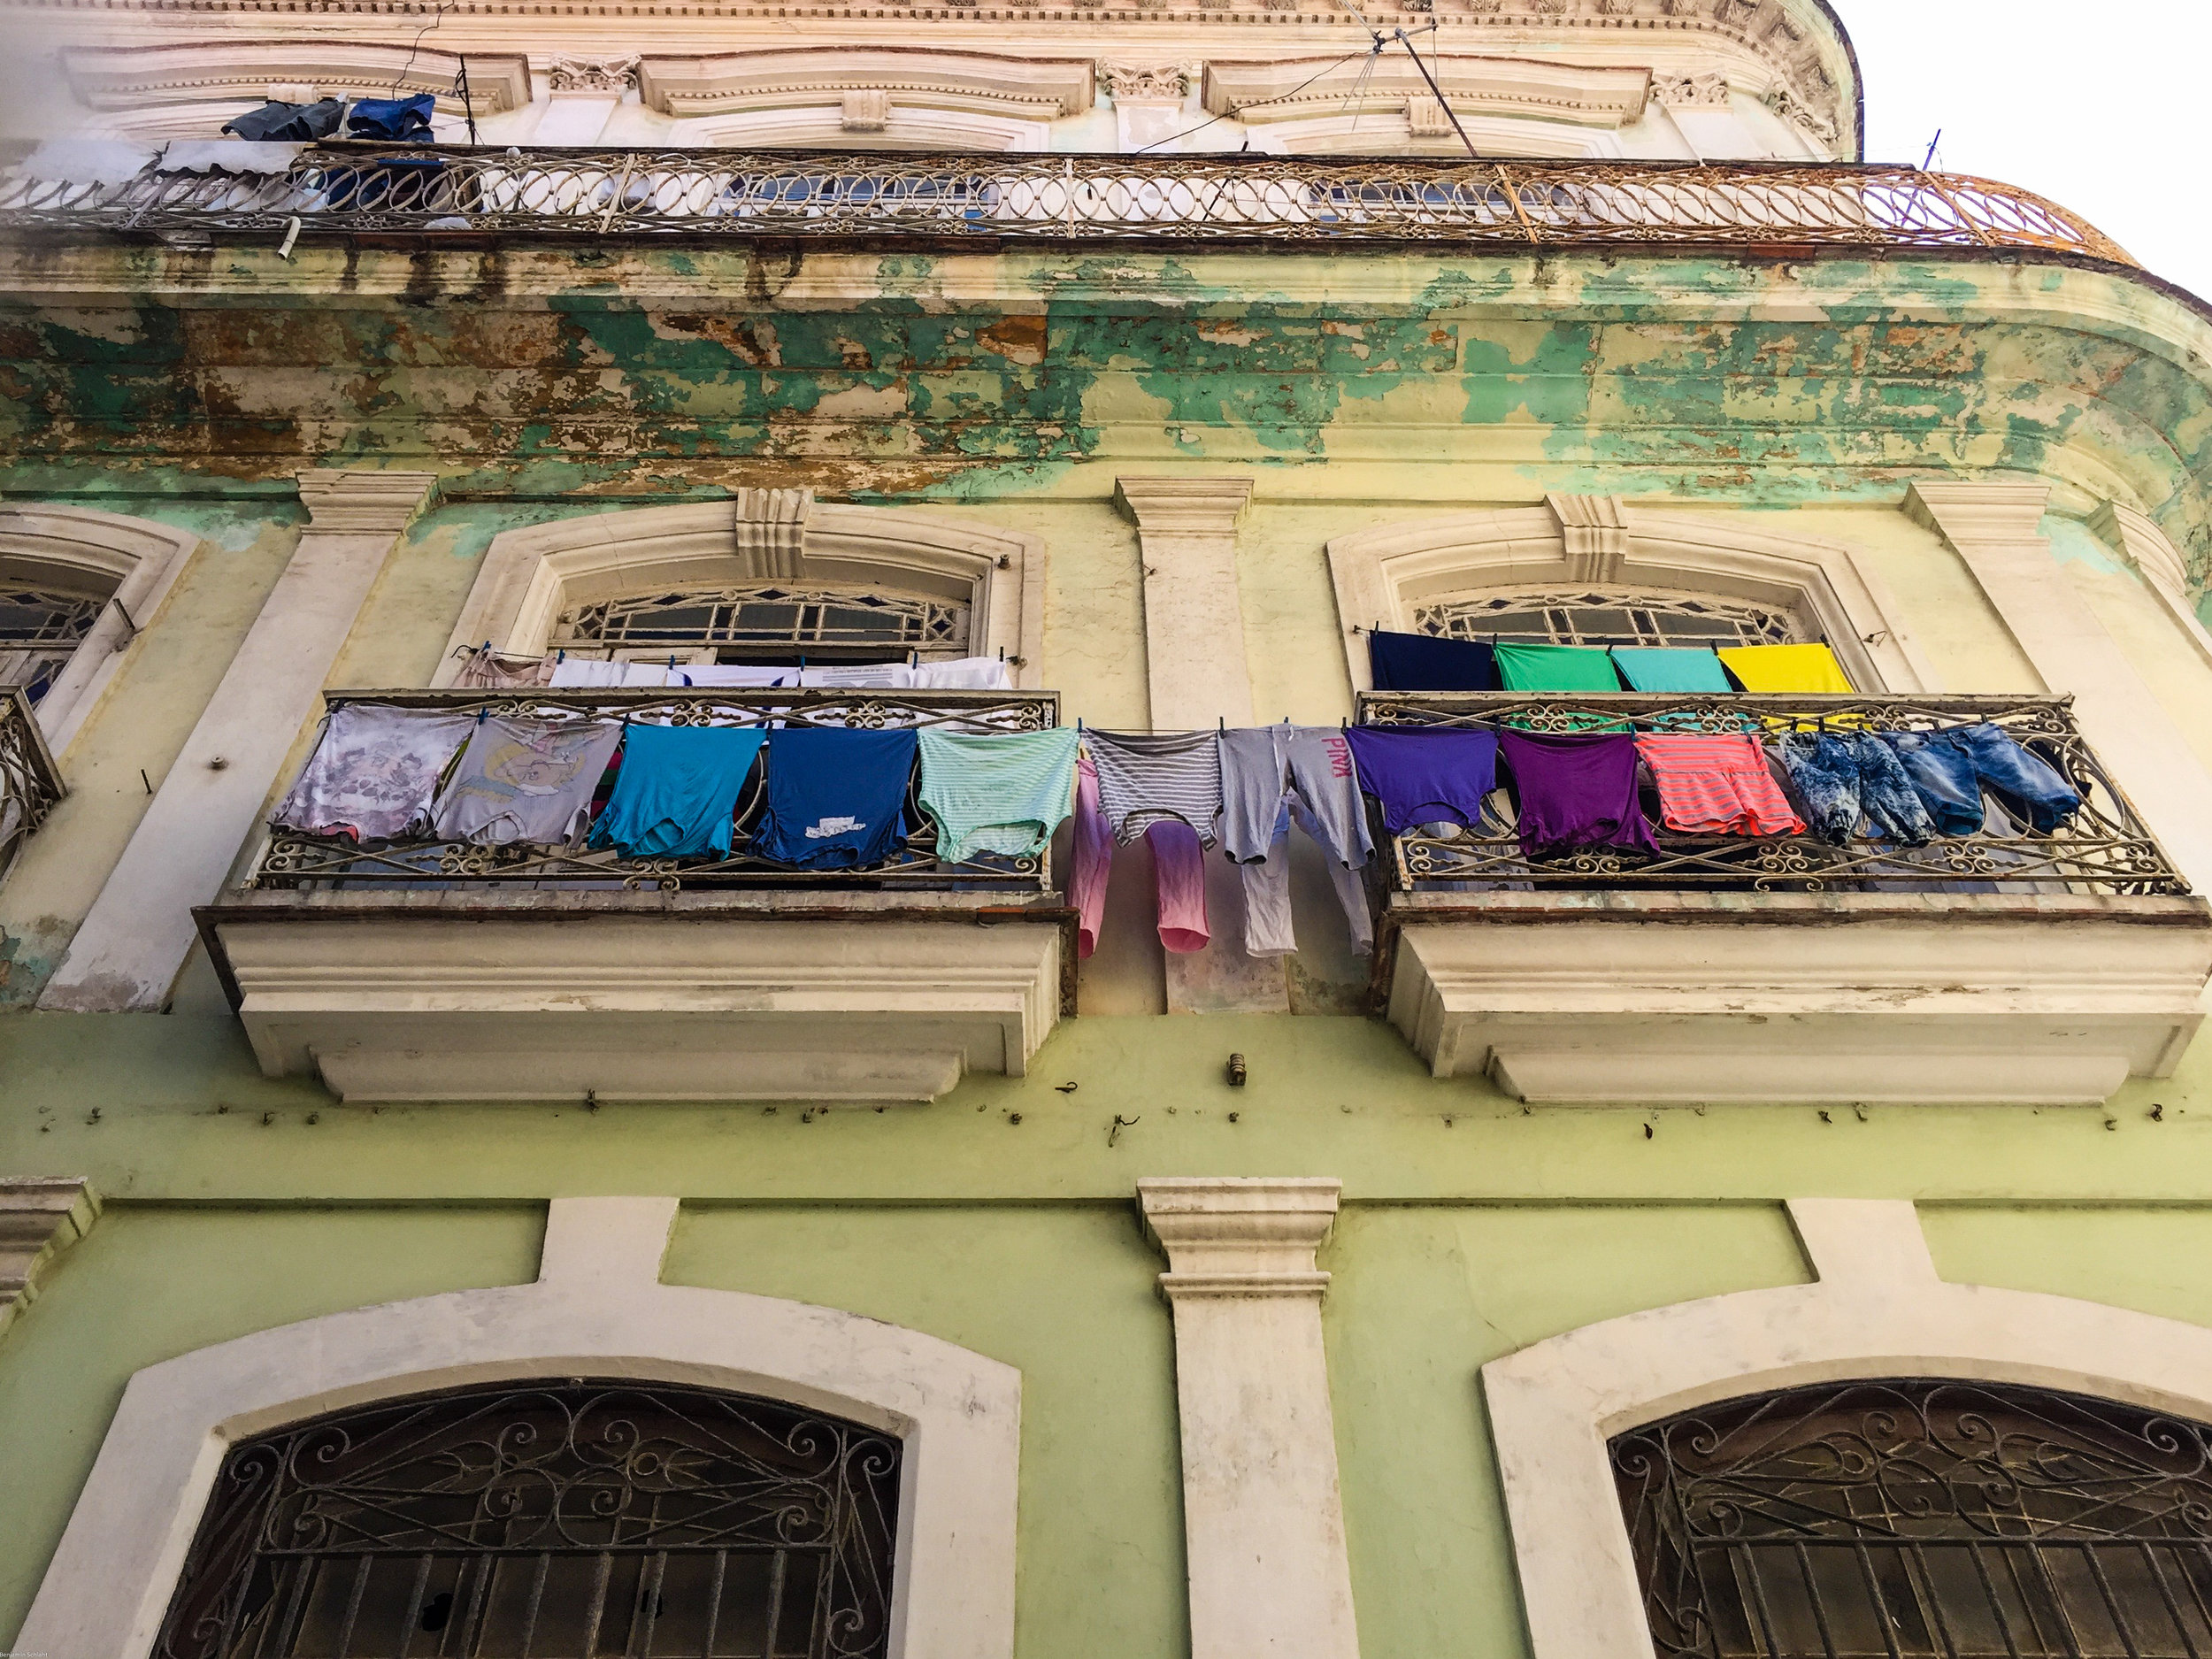 Clothes hanging out to dry (a very common sight)